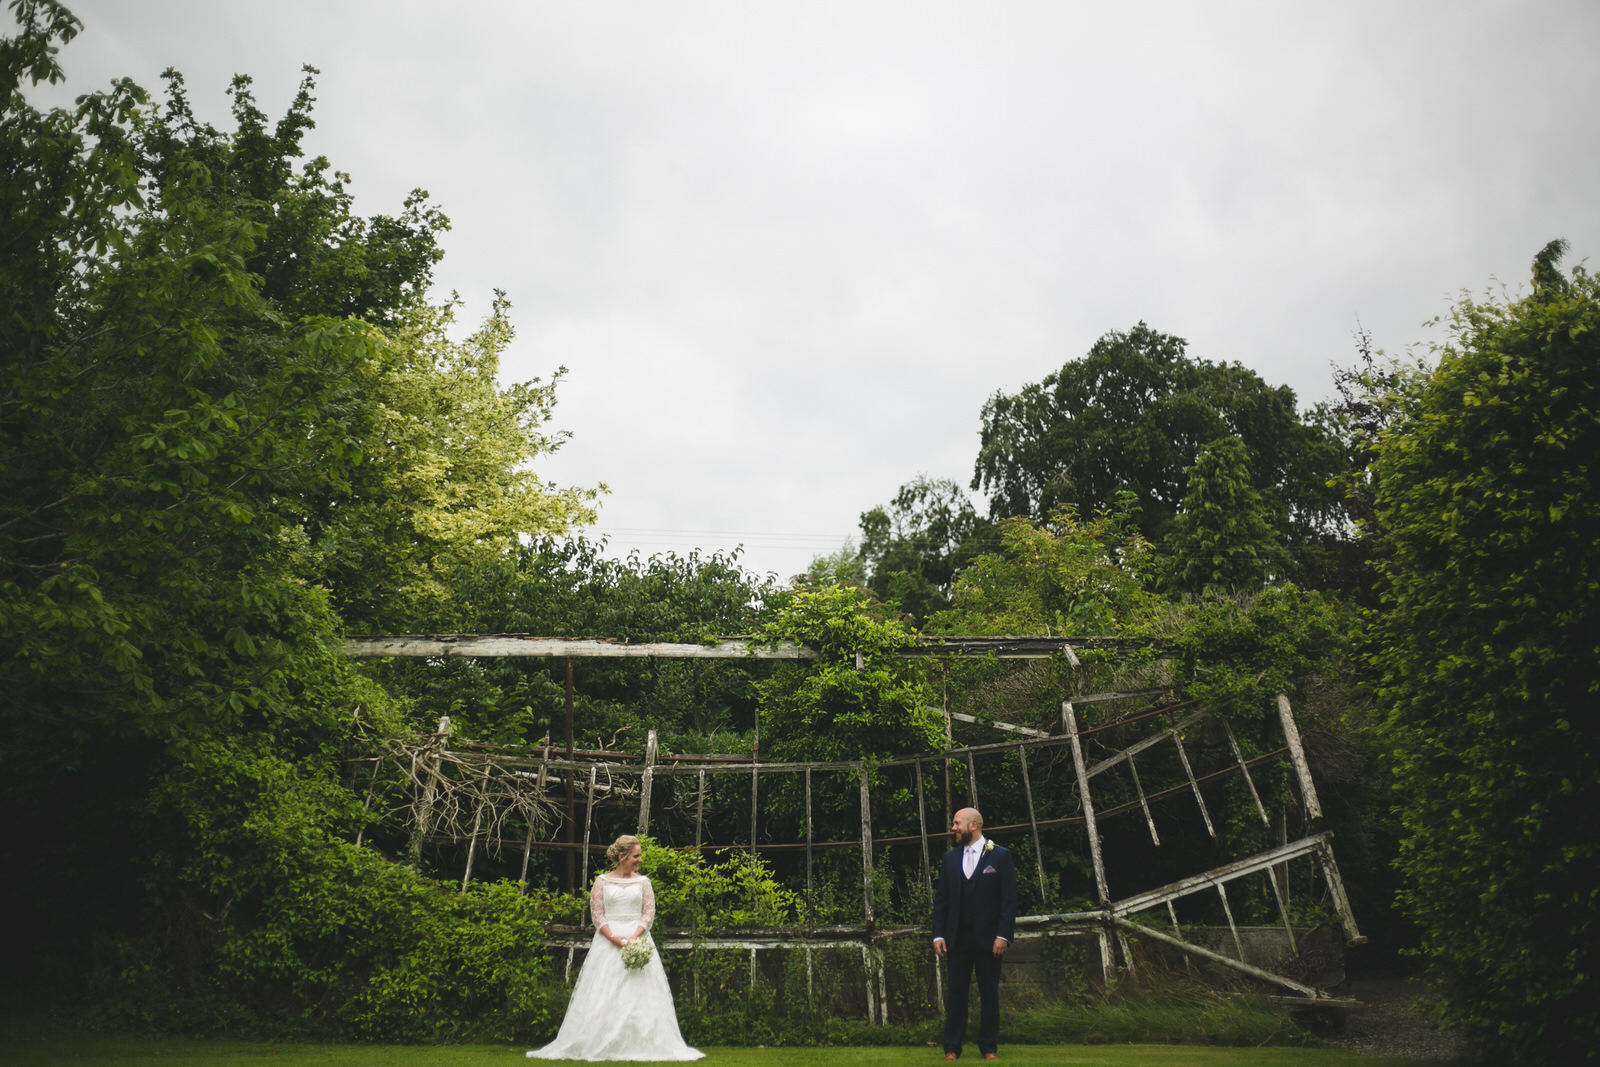 Wild Things Wed - Creative & Natural wedding photography based in Dublin, Ireland